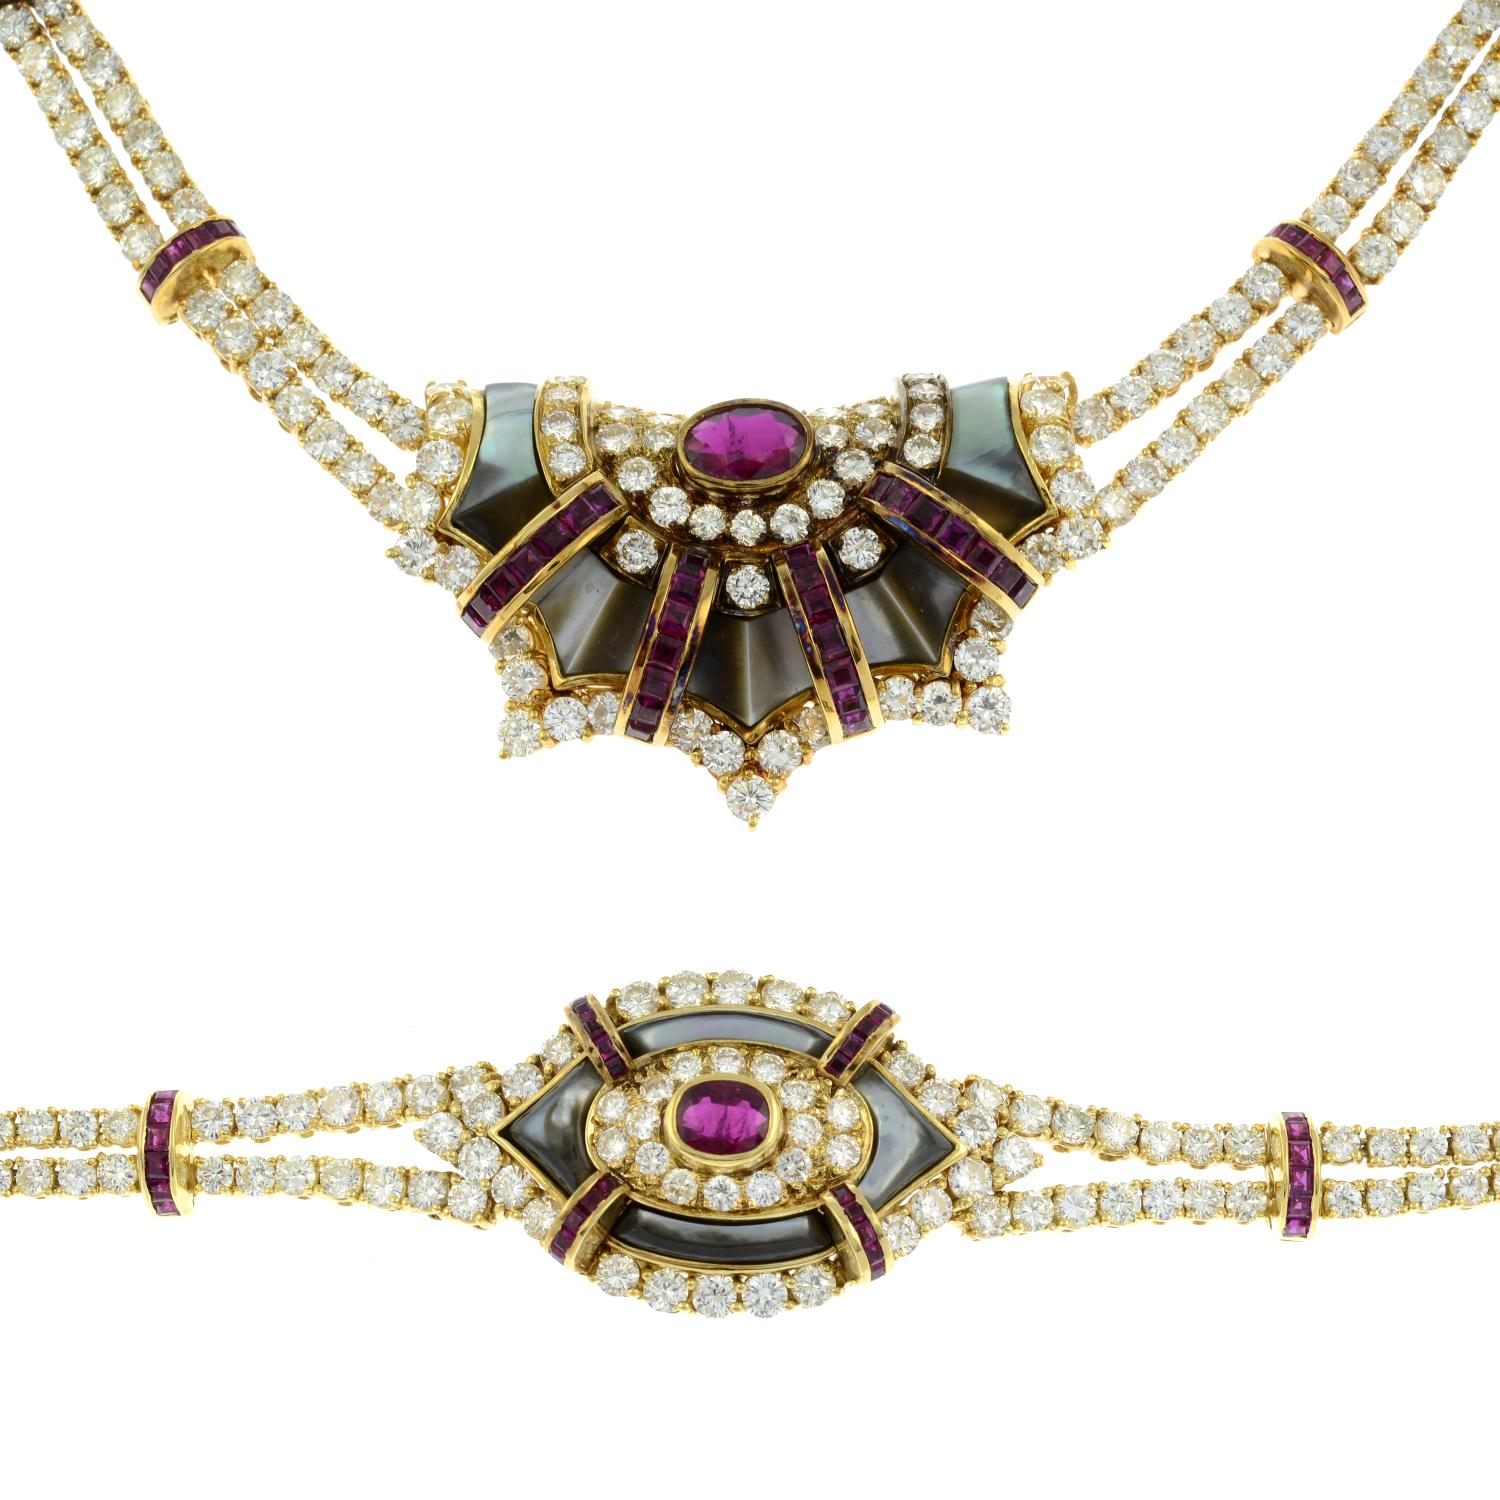 A diamond, ruby and grey mother-of pearl necklace, - Image 2 of 9